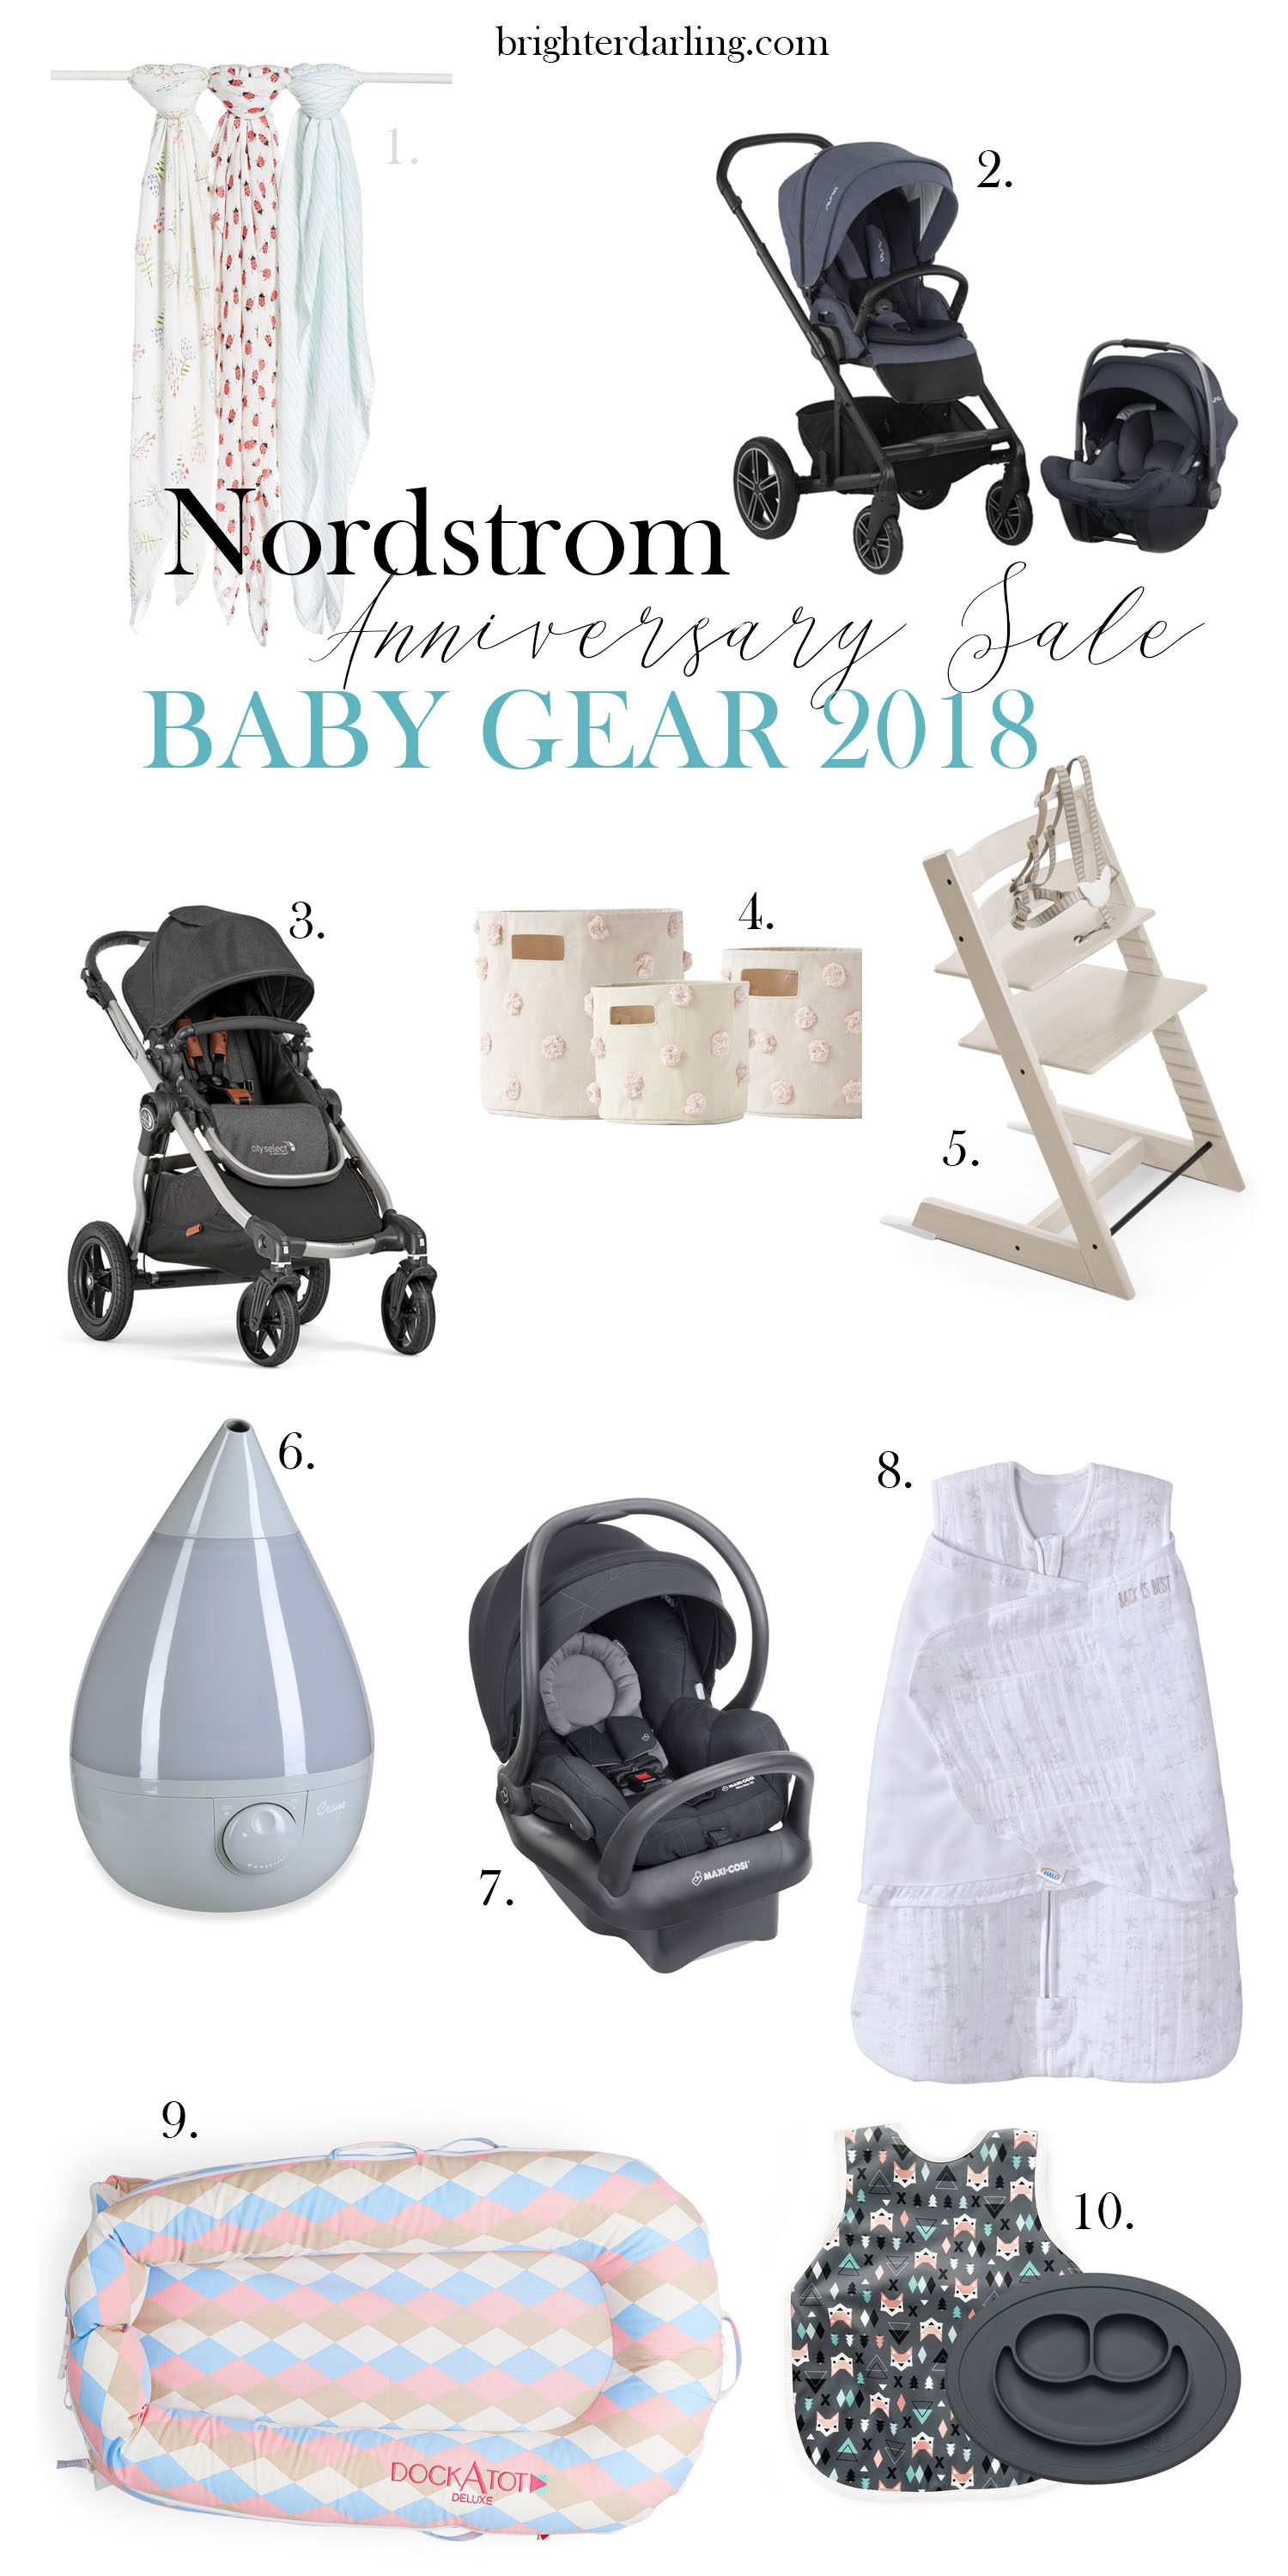 Nordstrom Anniversary Sale 2018 Baby Picks | Brighter Darling Blog | nuna MIXX stroller, Baby Jogger City Select Stroller, Crane Humidifier, Maxi Cosi Infant Car Seat Nordstrom, ezpz Silicone Feeding Mat, Halo Muslin Sleepsack, Stokke High Chair, Aden and Anais Swaddling Blankets, Petit Pehr Canvas Bins Nordstrom, DockATot Nordstrom Sale